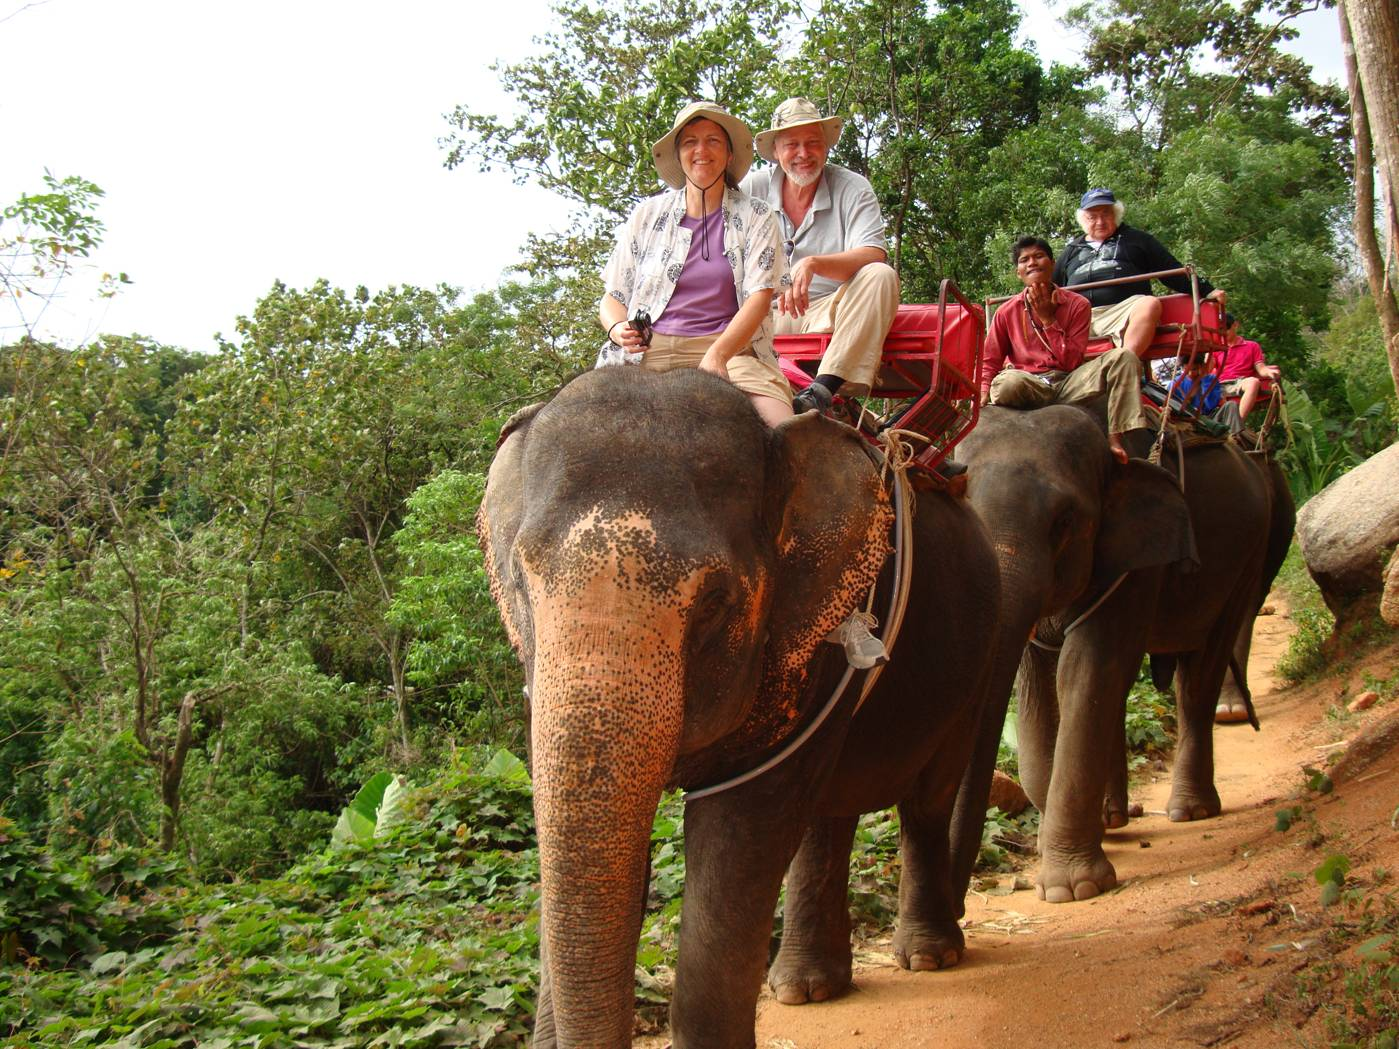 Picture:  Ruth at the wheel of several tons of elephant.  David is just a passenger.  Phuket Island, Thailand